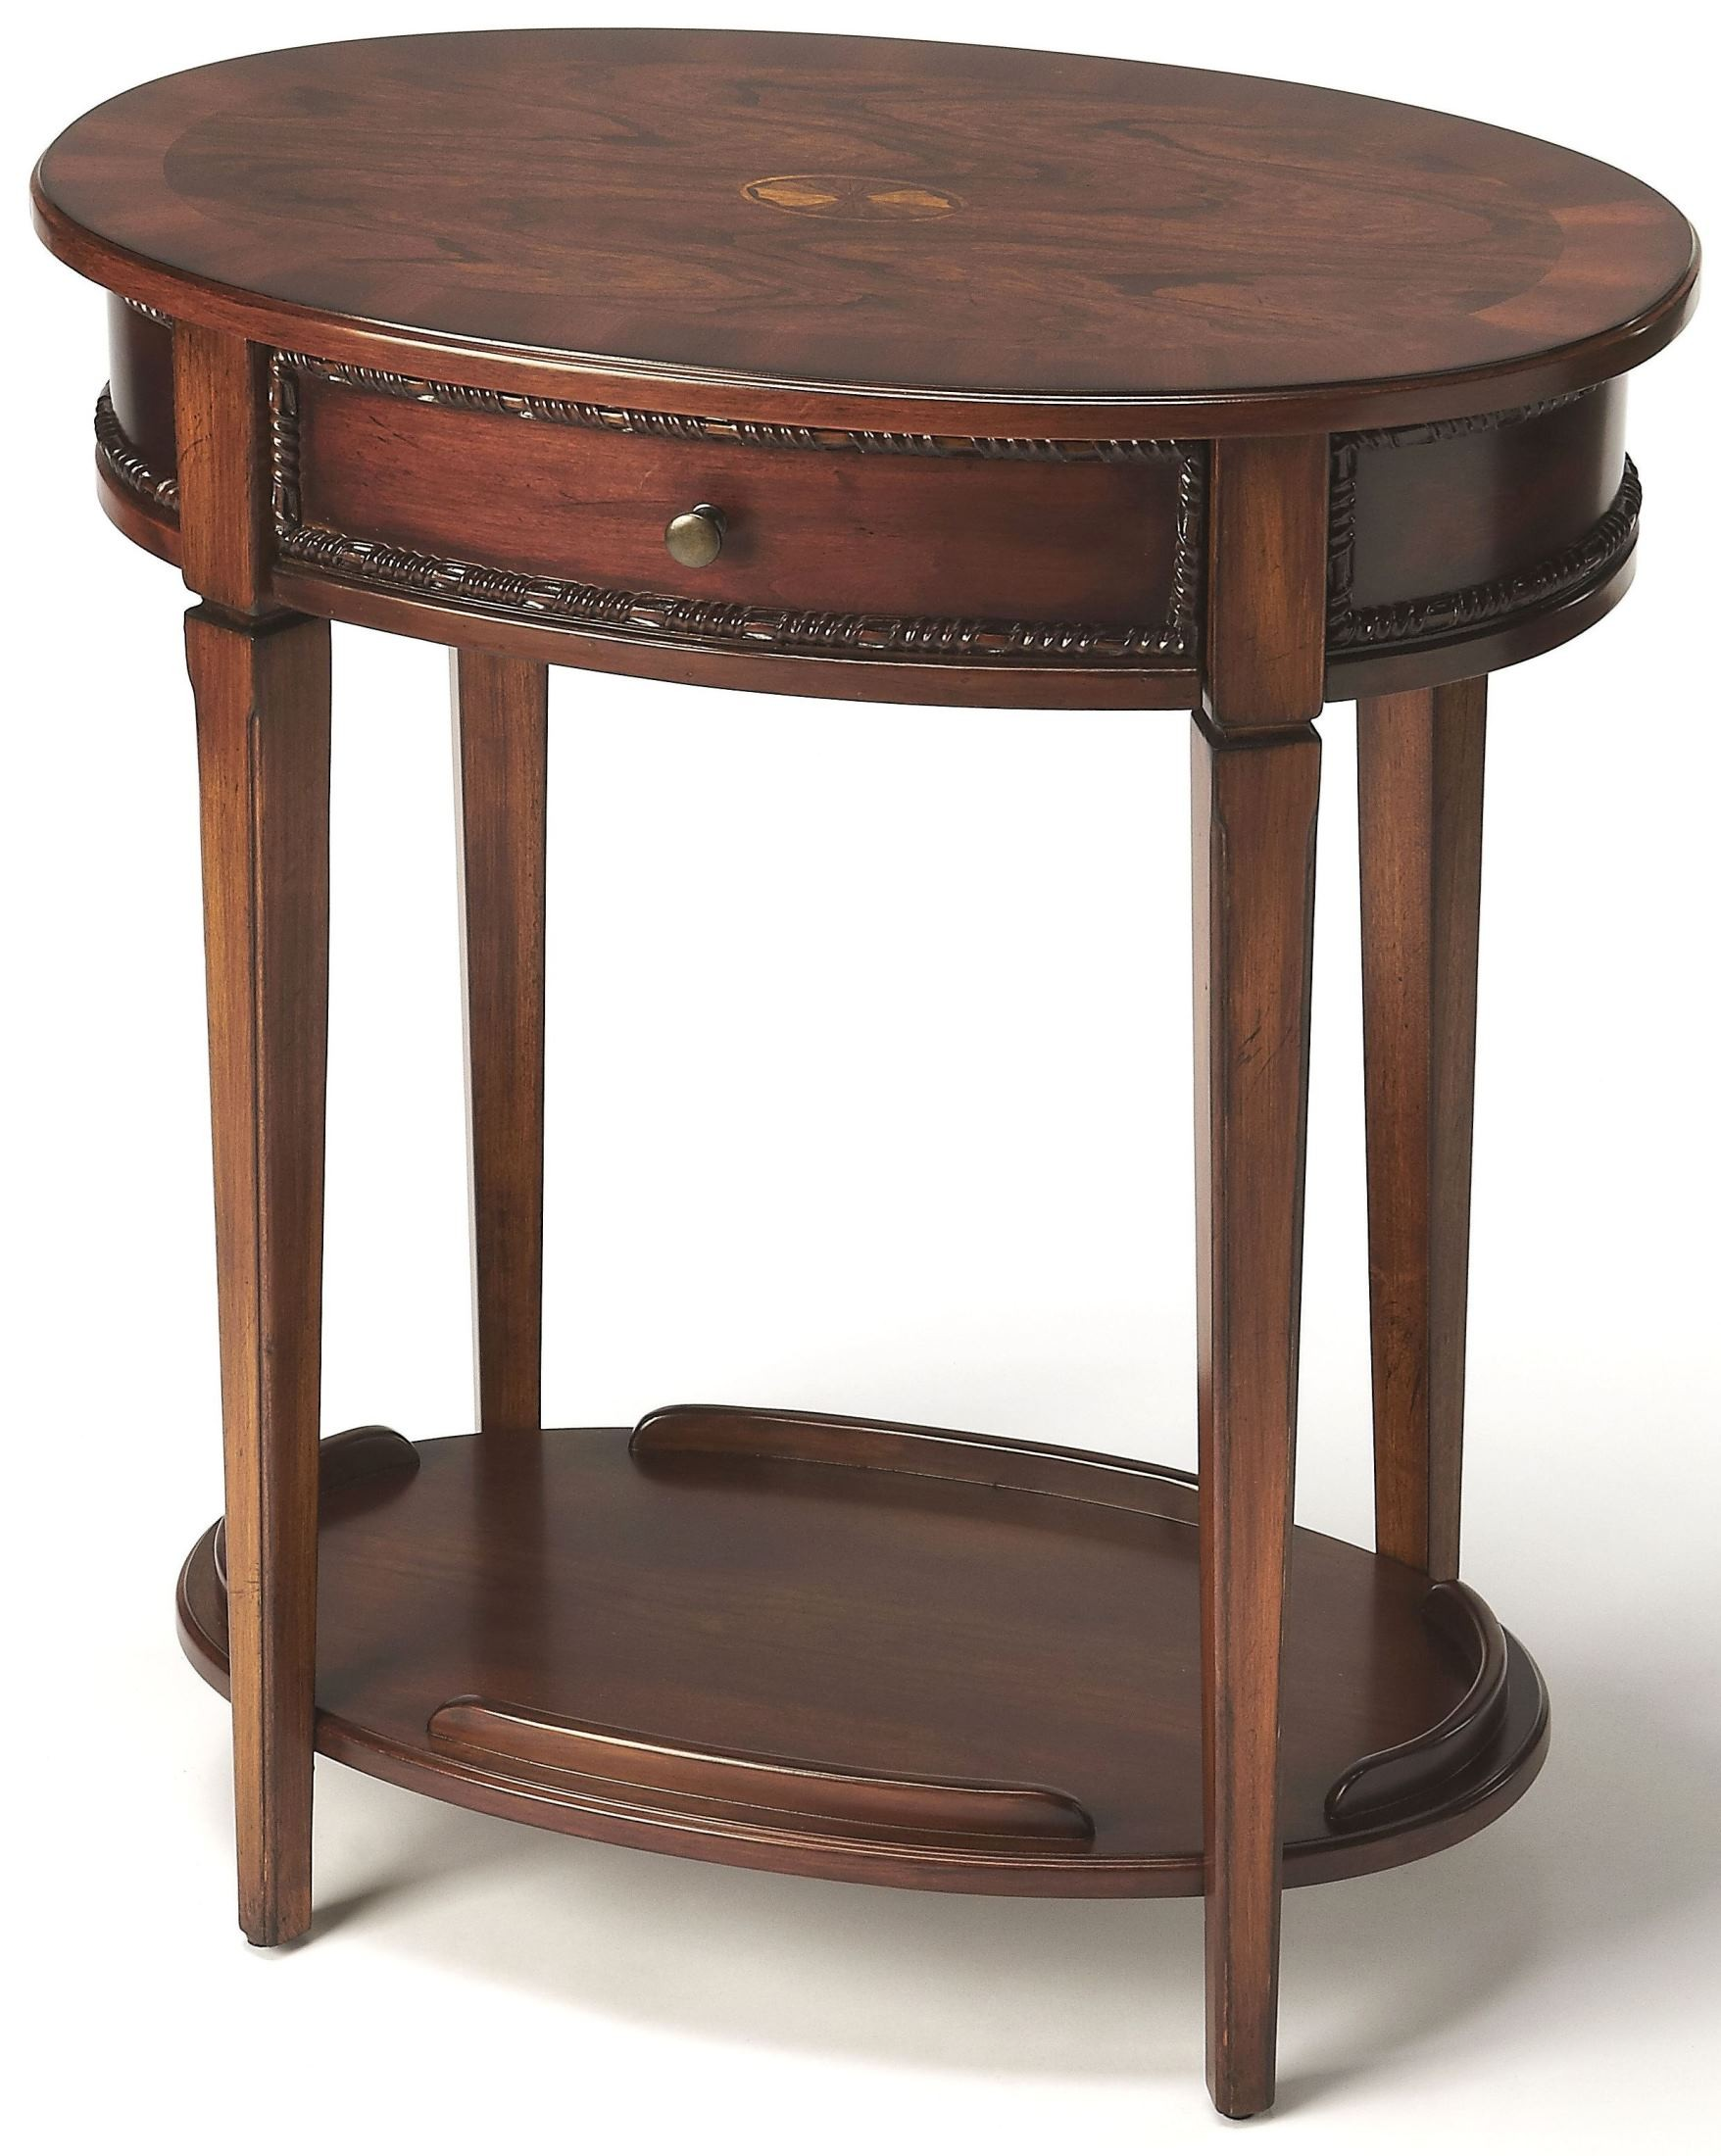 Adelaide antique cherry oval side table 3425011 butler for Cherry side table